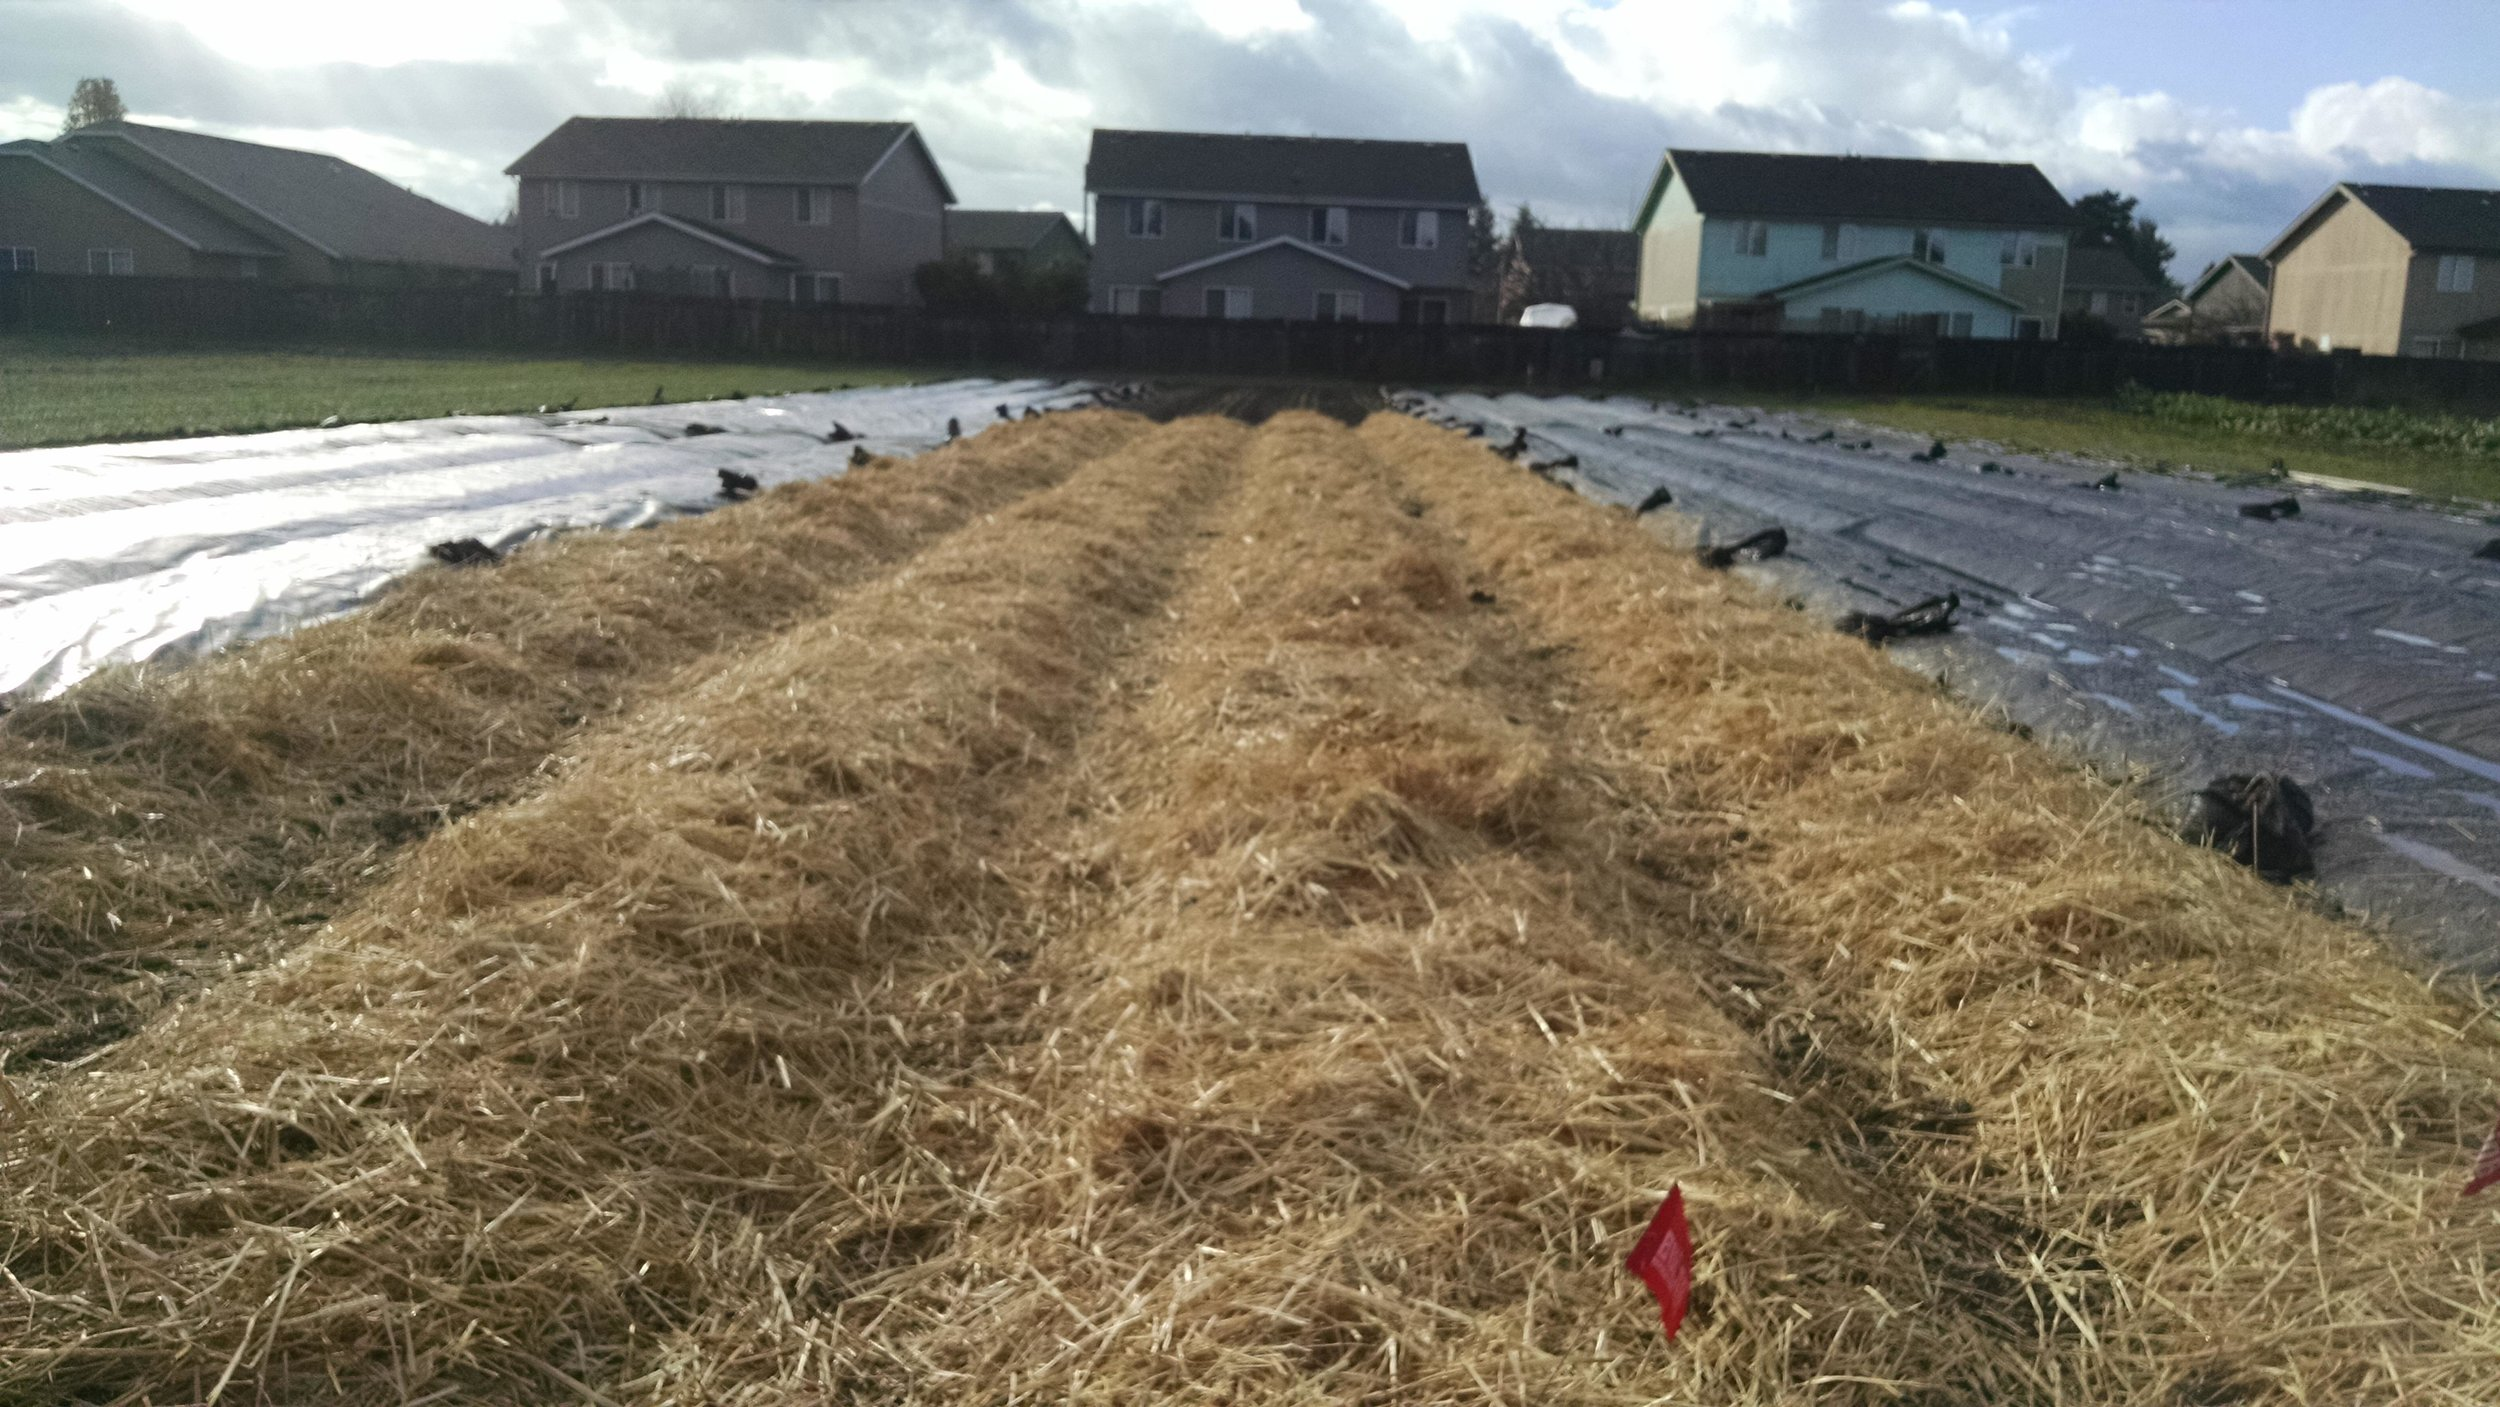 Spreading straw on the garlic beds